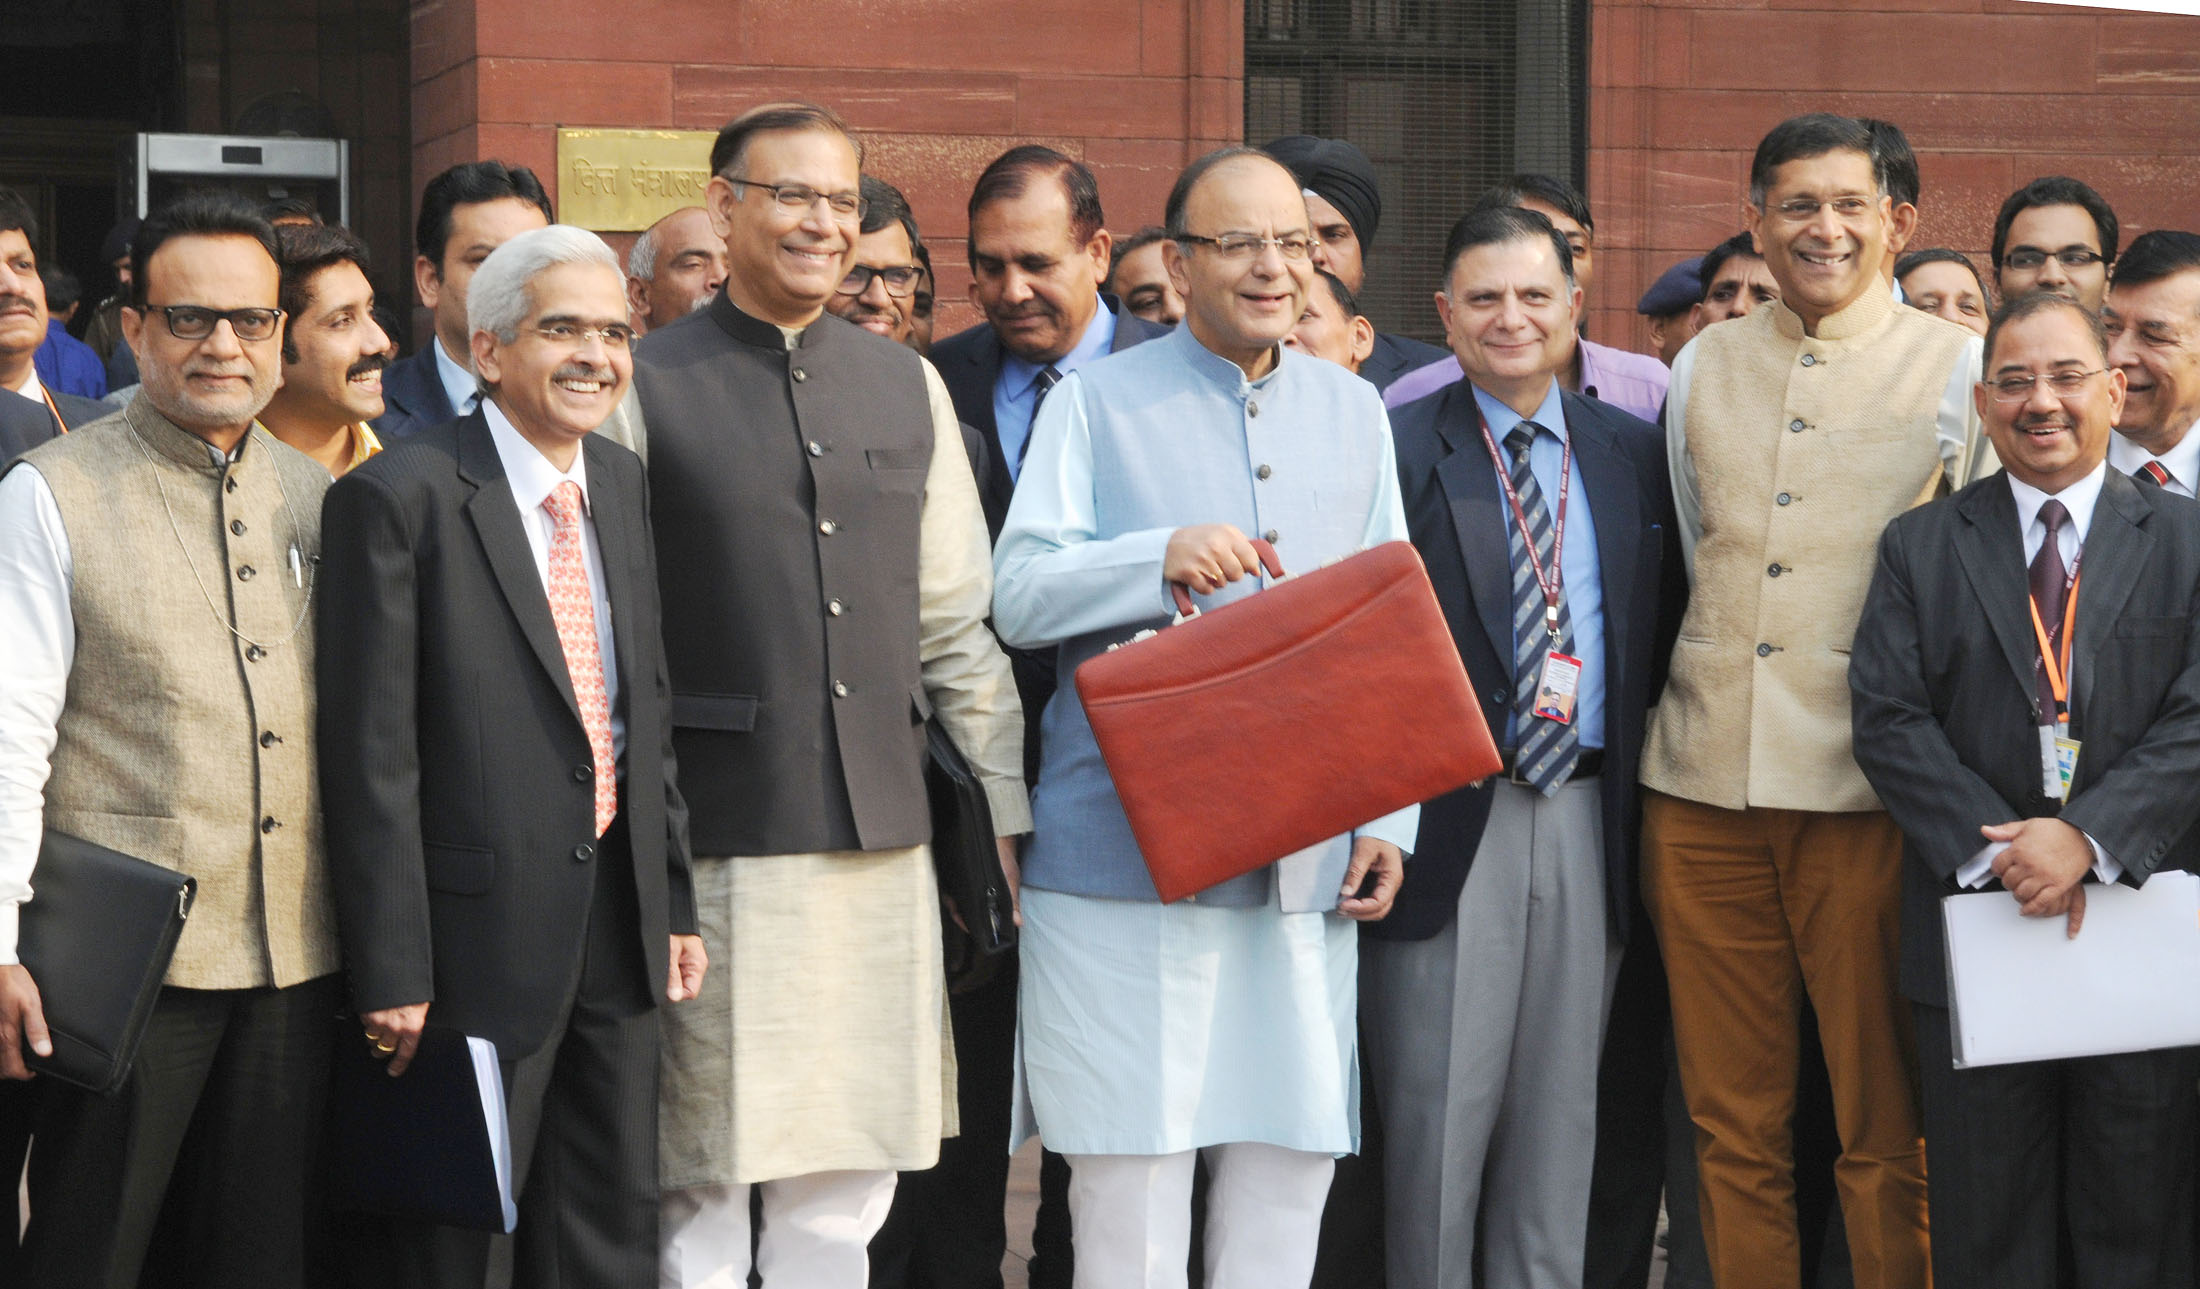 The Union Minister for Finance, Corporate Affairs and Information & Broadcasting, Shri Arun Jaitley departs from North Block to Parliament House along with the Minister of State for Finance, Shri Jayant Sinha to present the General Budget 2016-17, in New Delhi on February 29, 2016. The Secretary, Department of Economic Affairs, Ministry of Finance, Shri Shaktikanta Das, the Secretary, Revenue, Dr. Hasmukh Adhia and the Chief Economic Adviser, Dr. Arvind Subramanian are also seen.